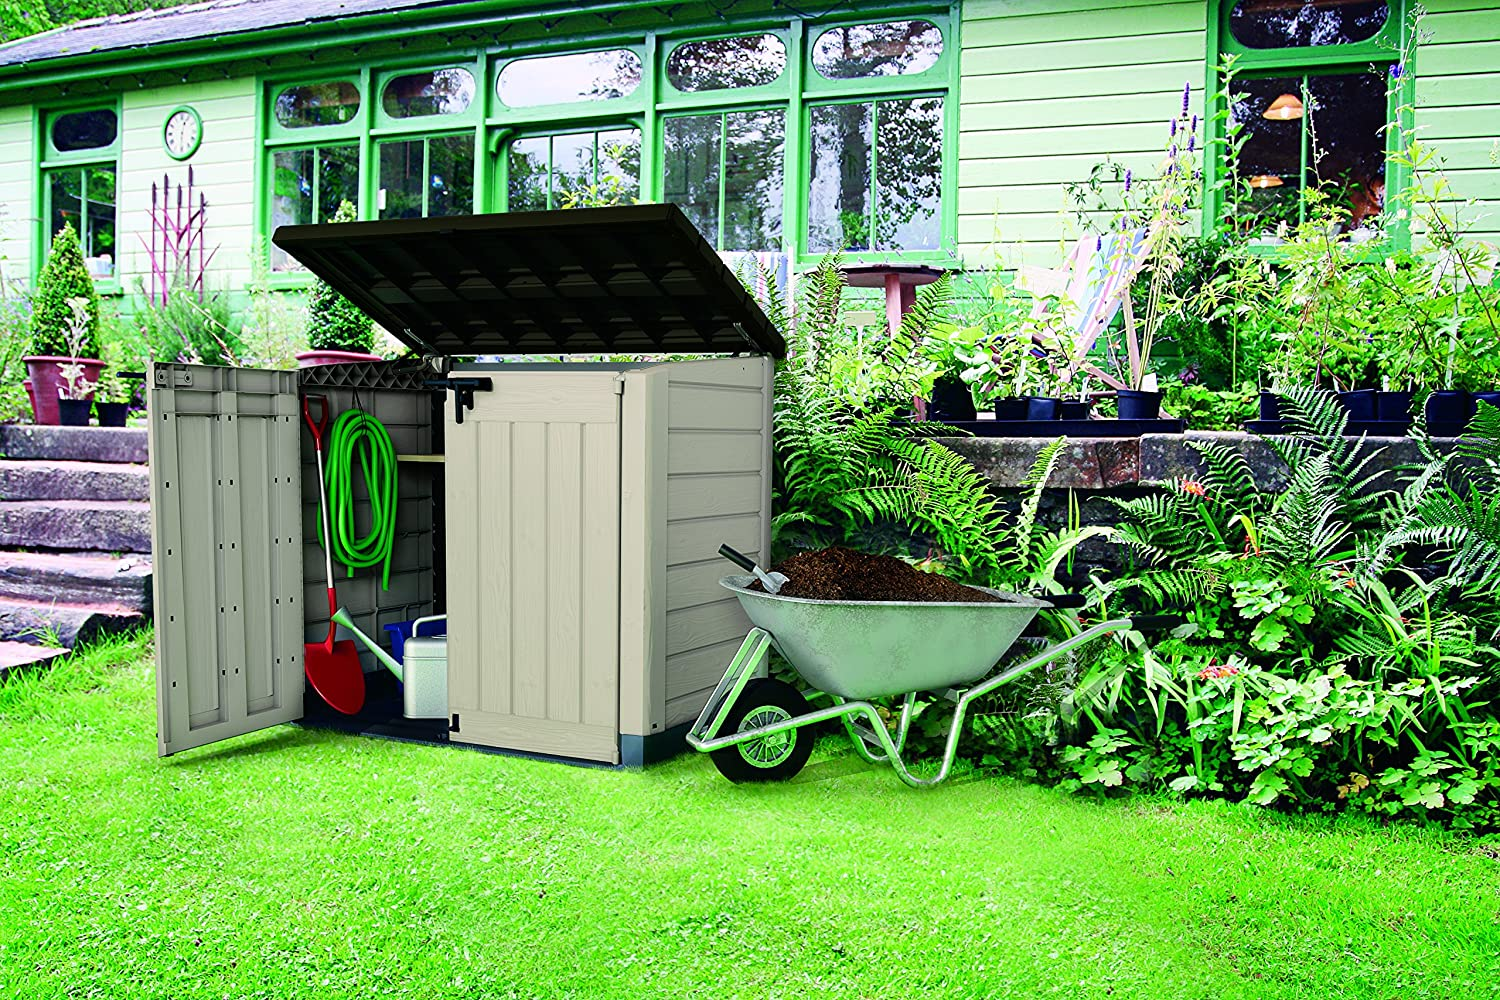 Amazon.com: Keter Store It Out MAX 4.8 X 2.7 Outdoor Resin Horizontal Storage  Shed: Garden U0026 Outdoor